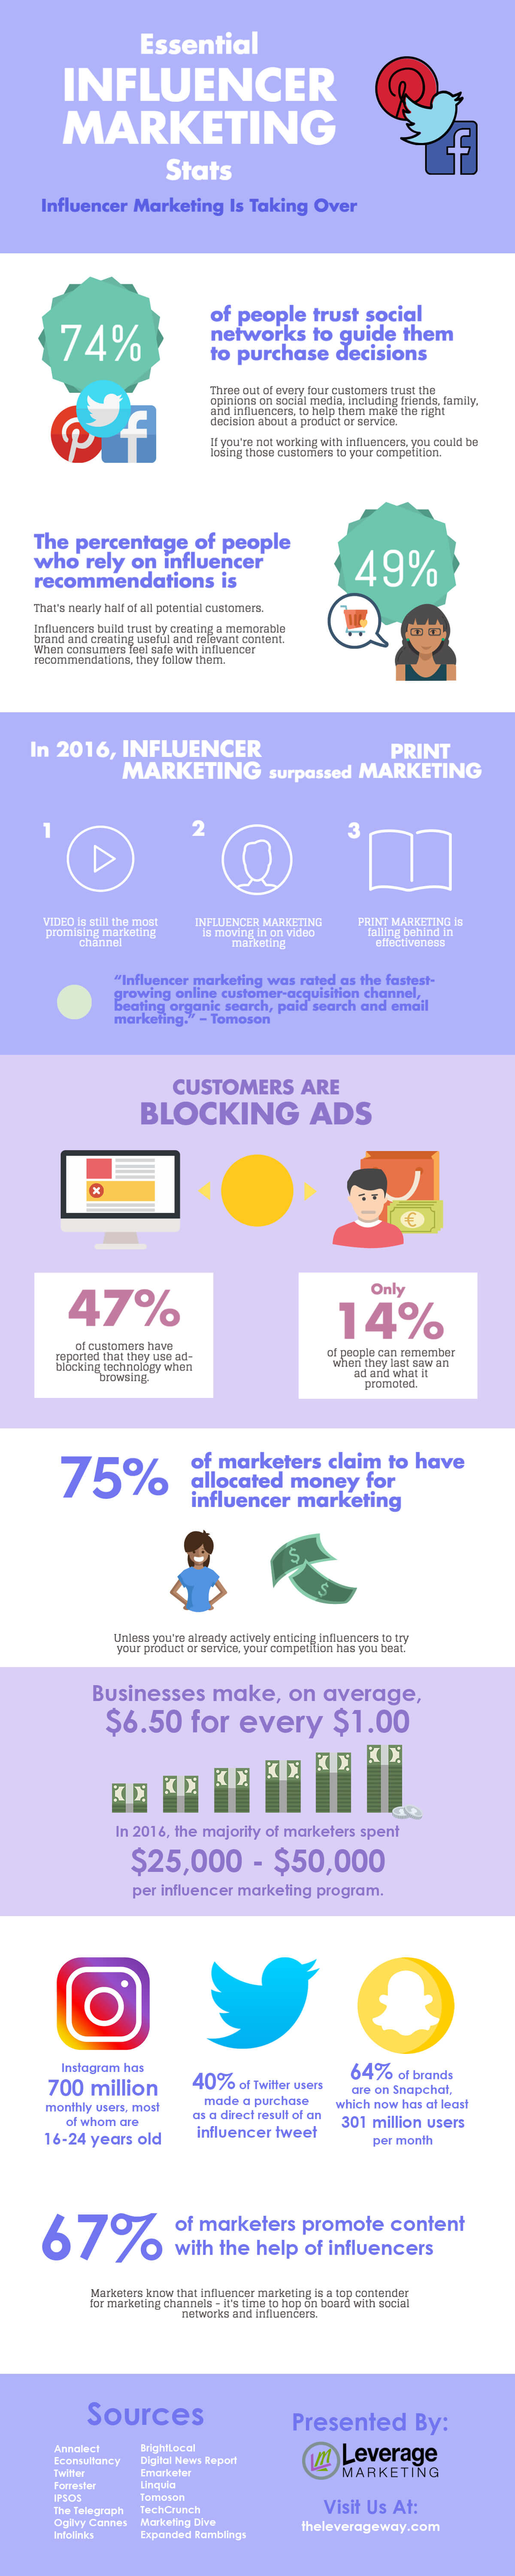 11 Essential Influencer Marketing Facts and Statistics - Leverage